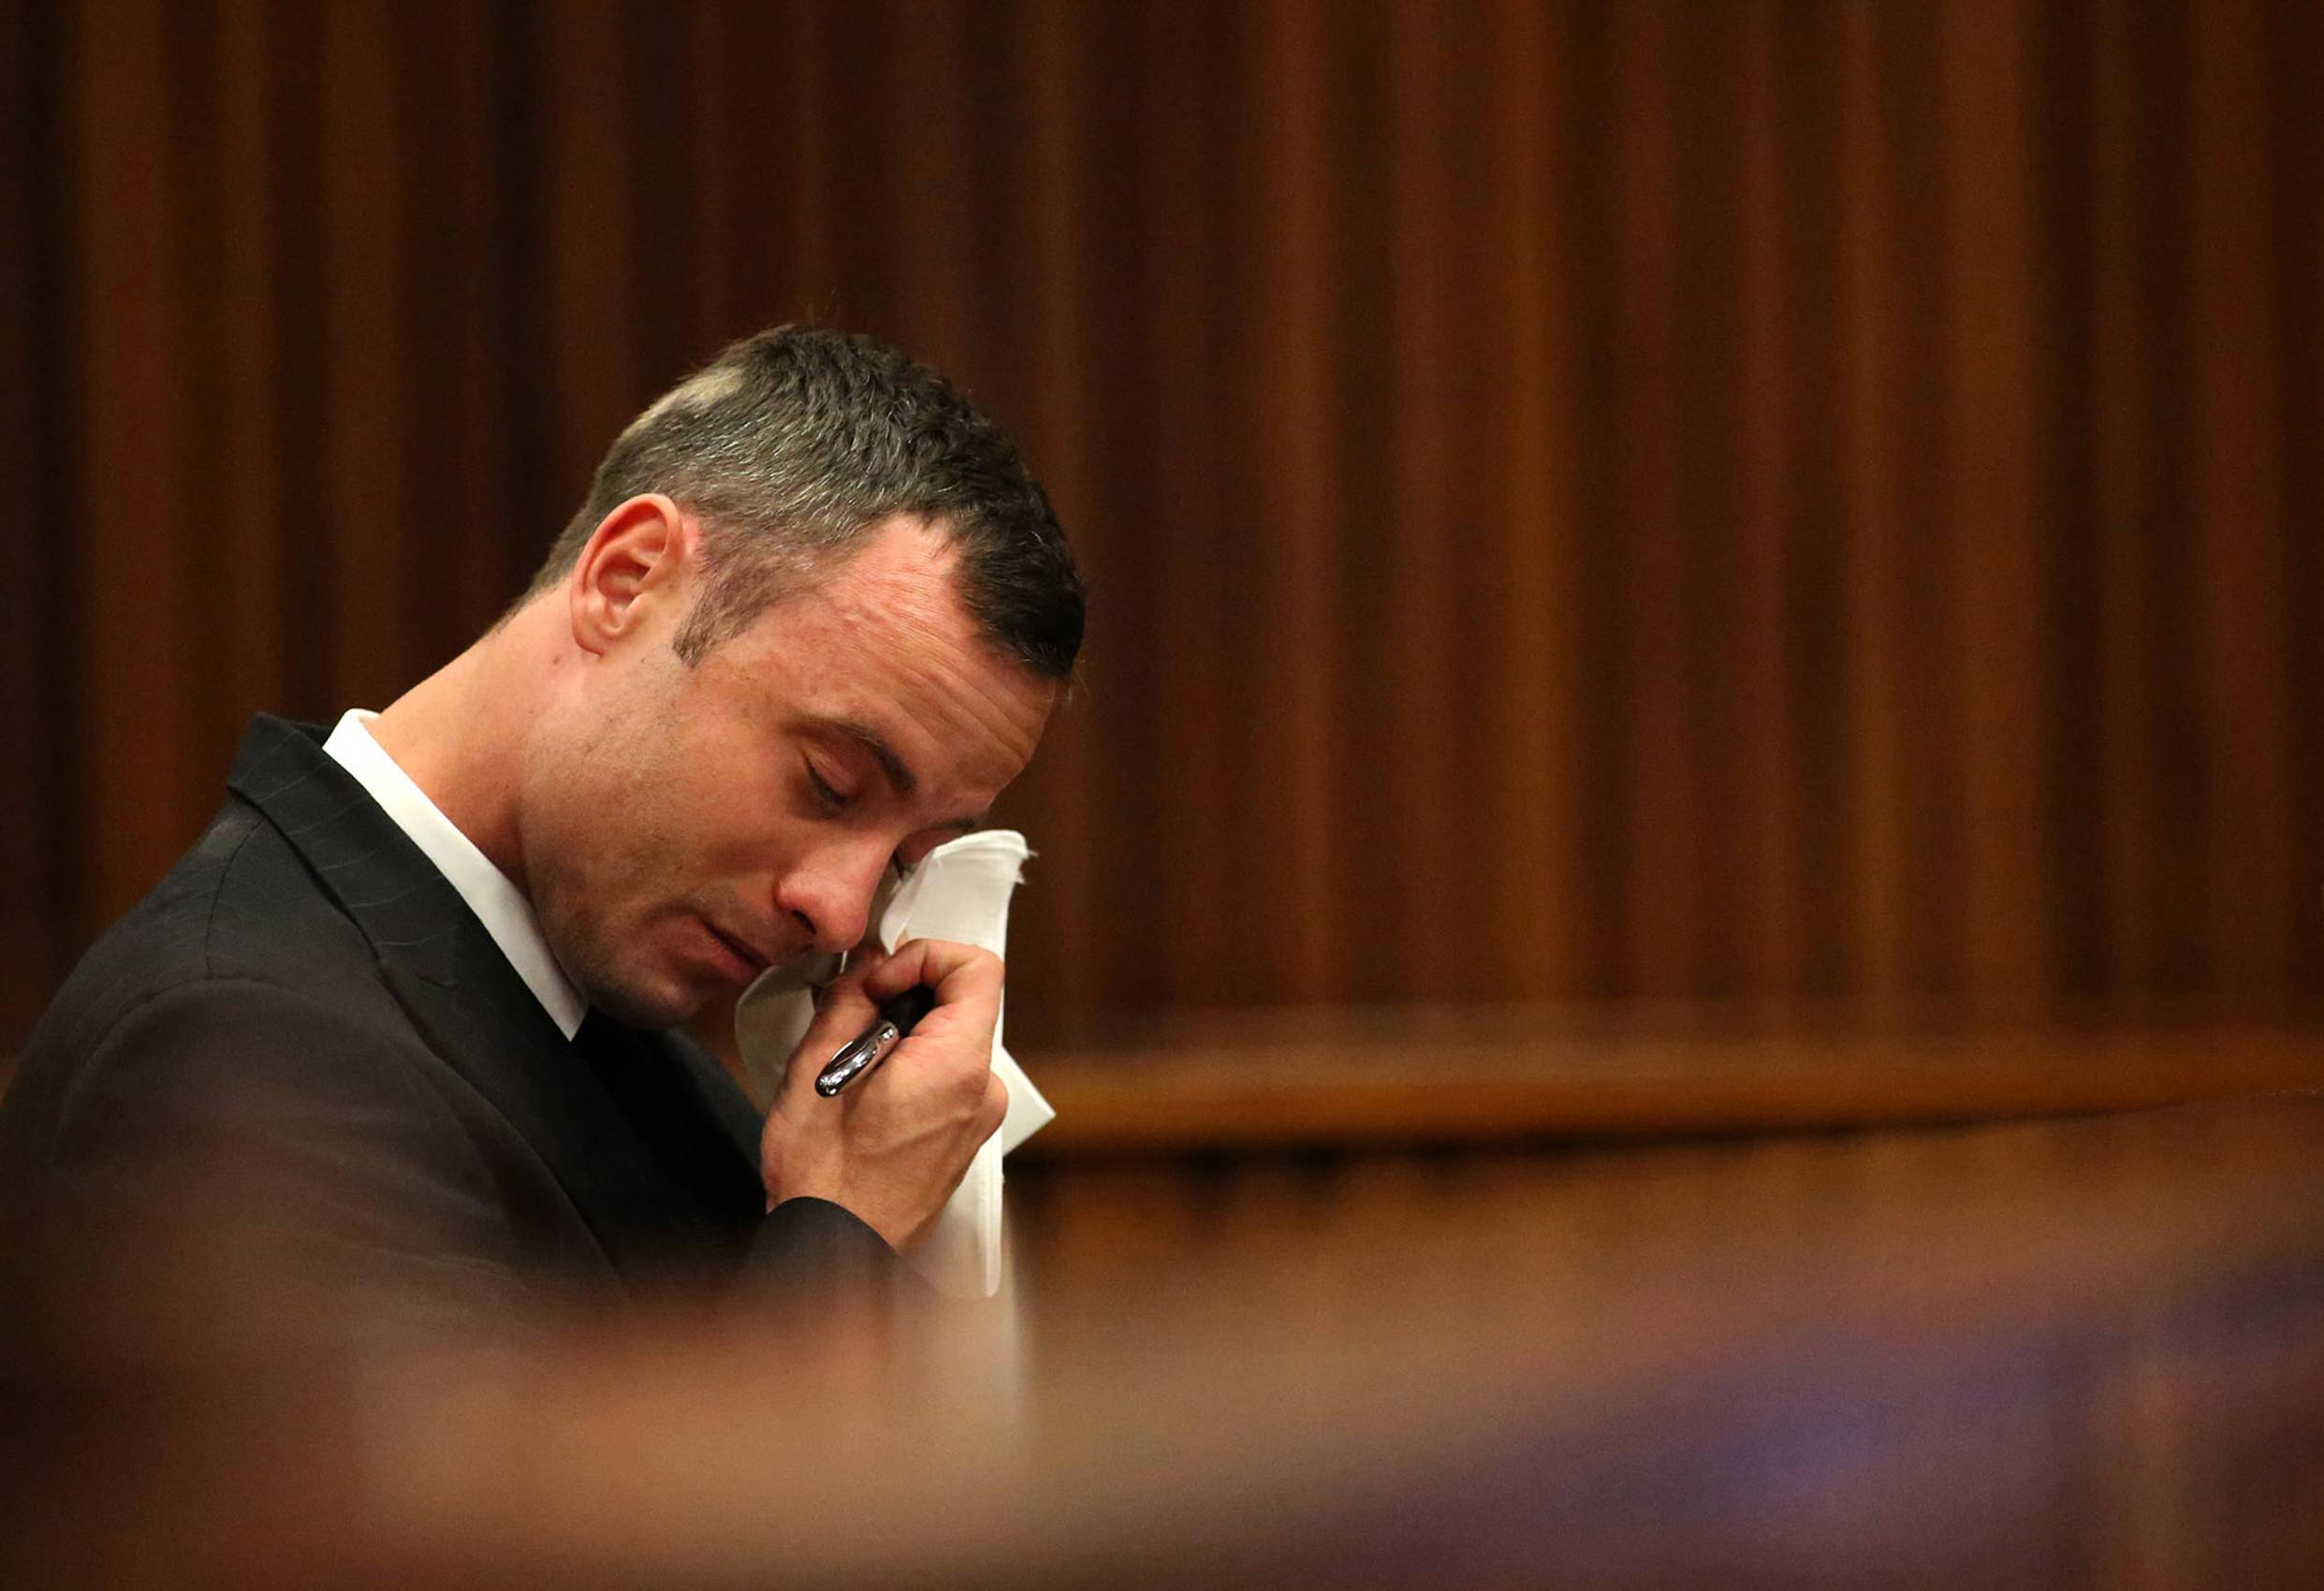 Oscar Pistorius reacts in the dock during cross questioning on mobile phone text messages between him and Reeva Steenkamp in court in Pretoria, South Africa, Tuesday, March 25, 2014. Pistorius is charged with the Valentines Day 2013 shooting death of his girlfriend Reeva Steenkamp.